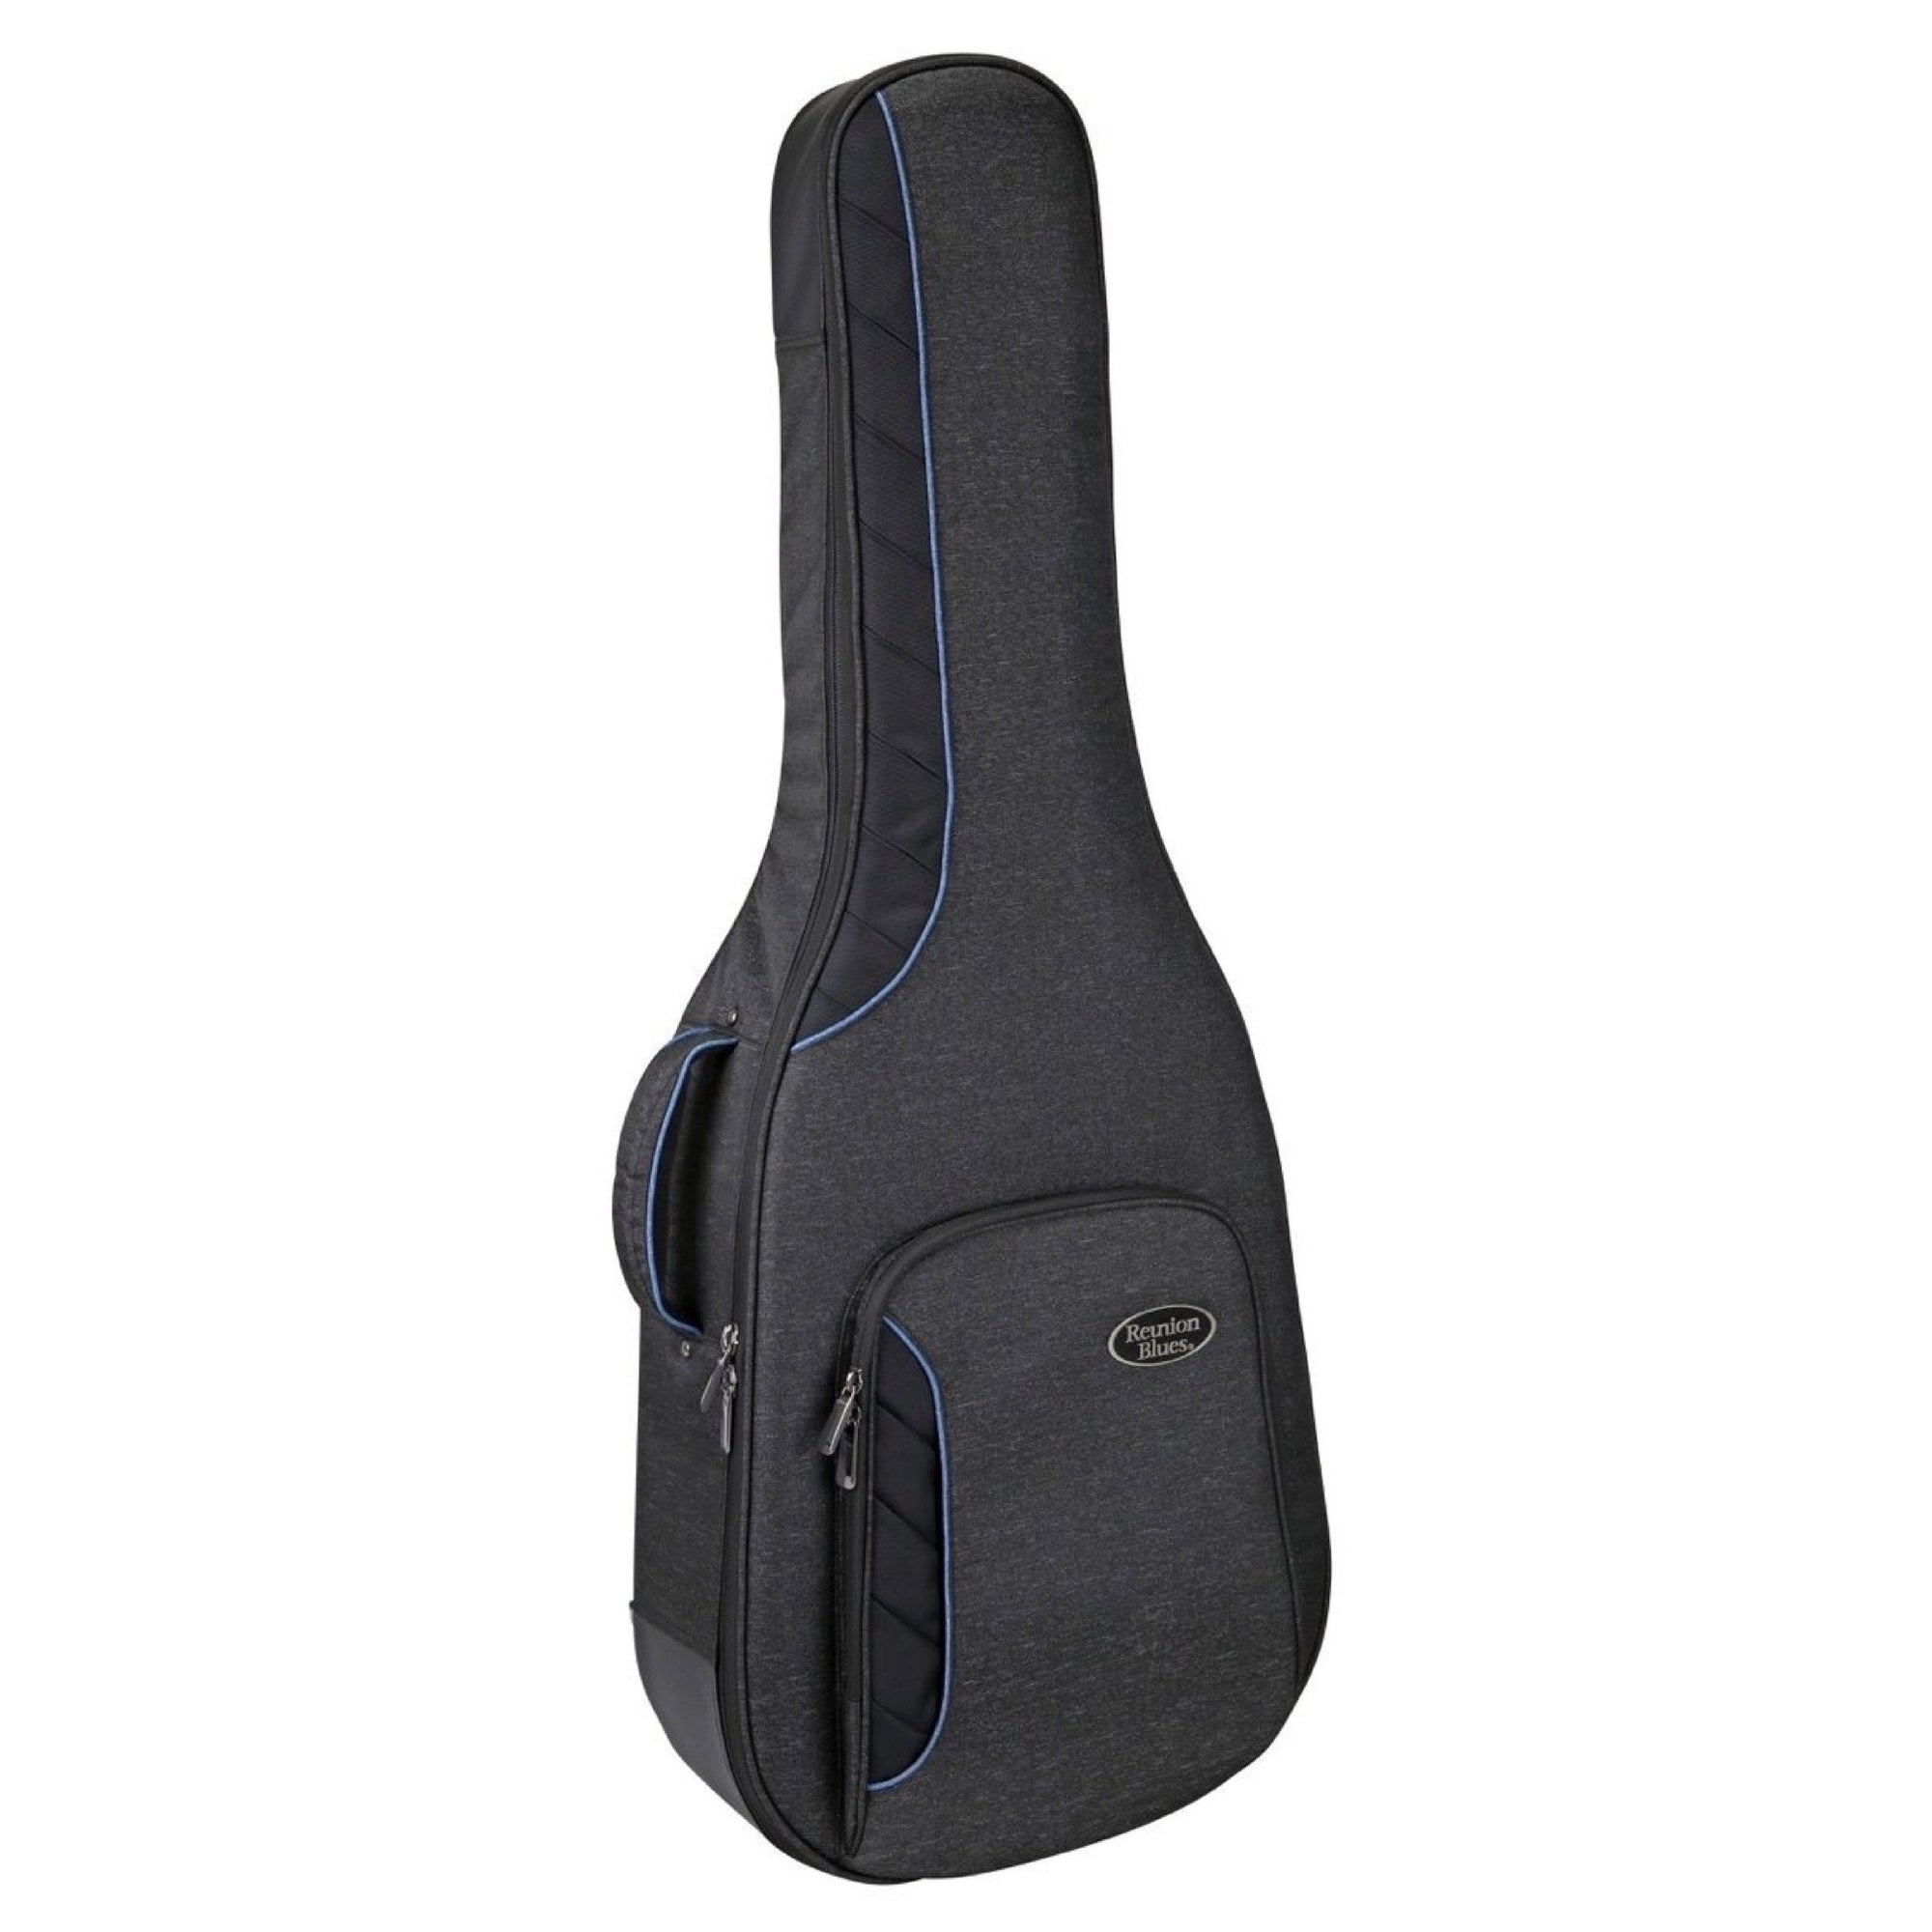 Reunion Blues RBCC3 Small Body Acoustic Guitar Bag